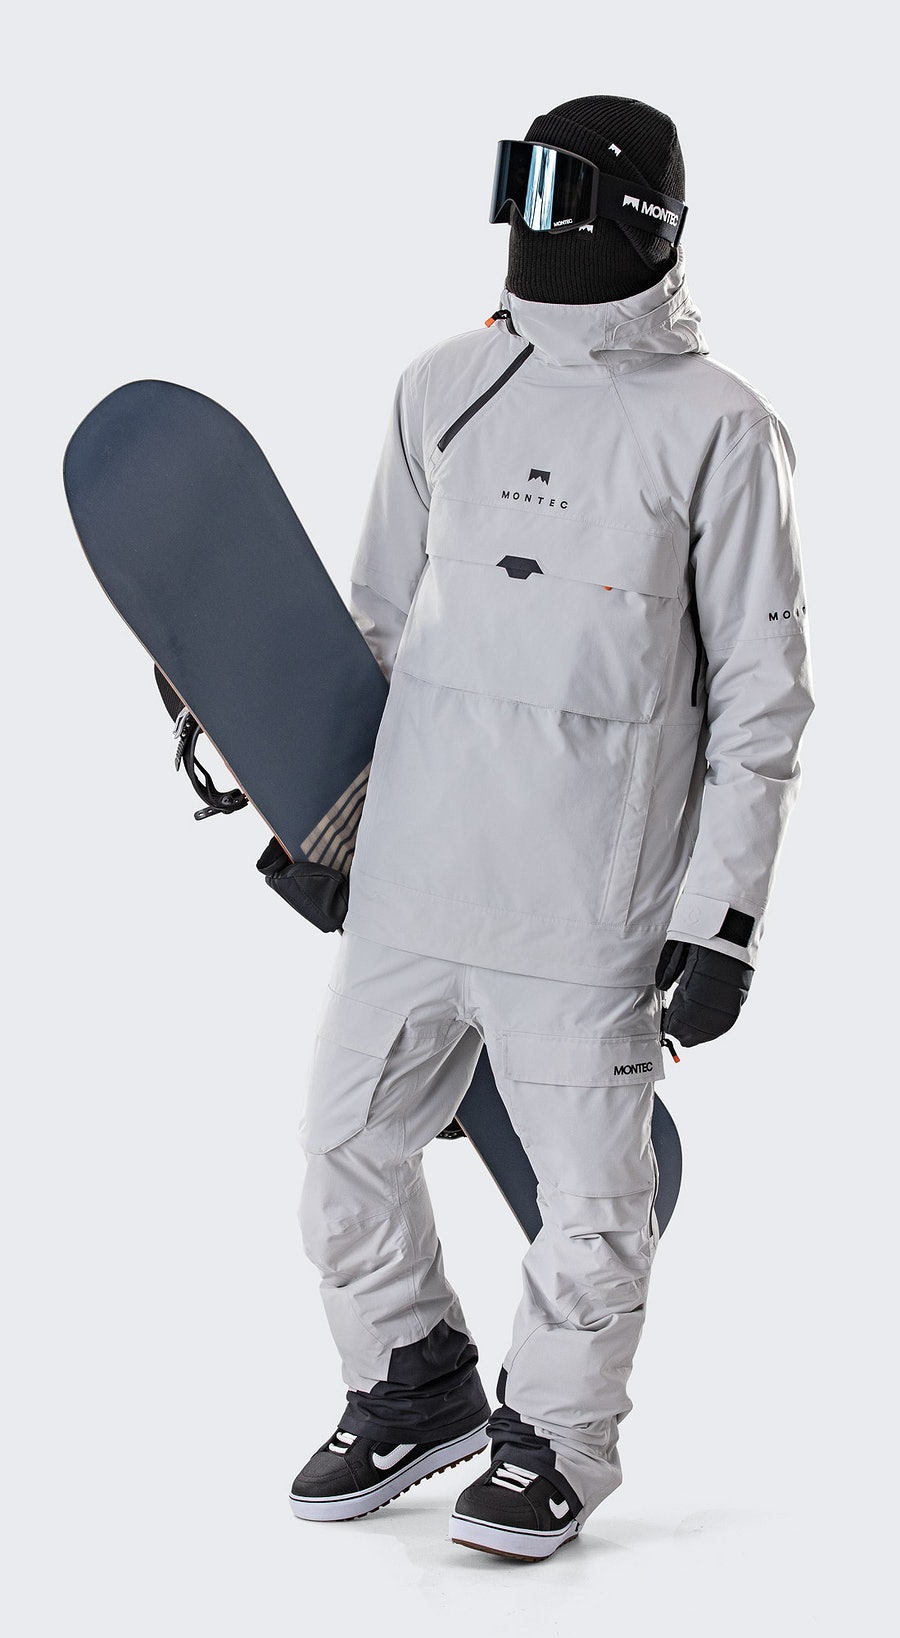 Montec Dune Light Grey Snowboardkleidung Multi